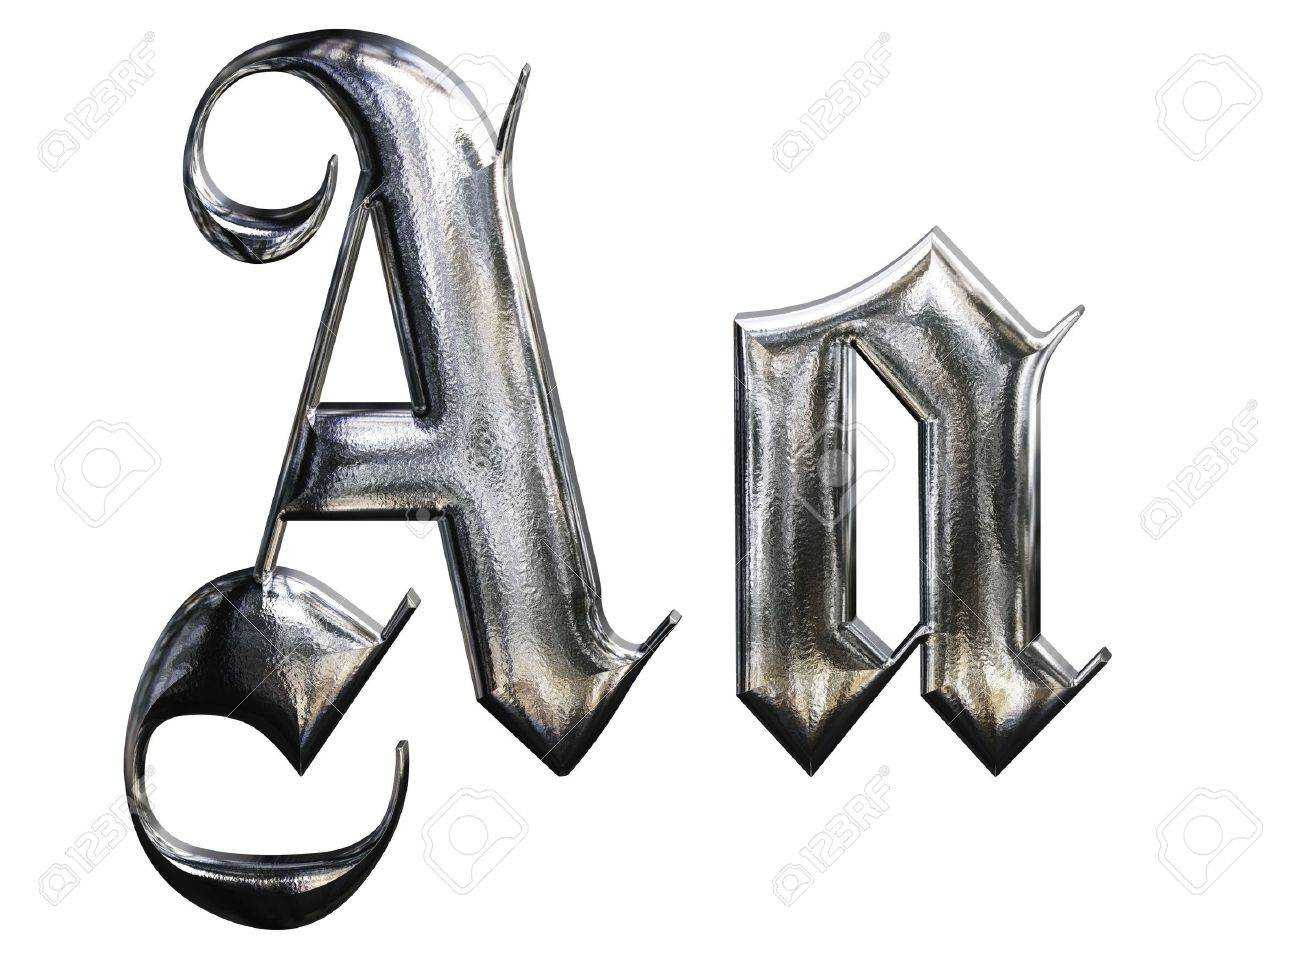 Metallic Patterned Letter Of German Gothic Alphabet Font A Stock Photo